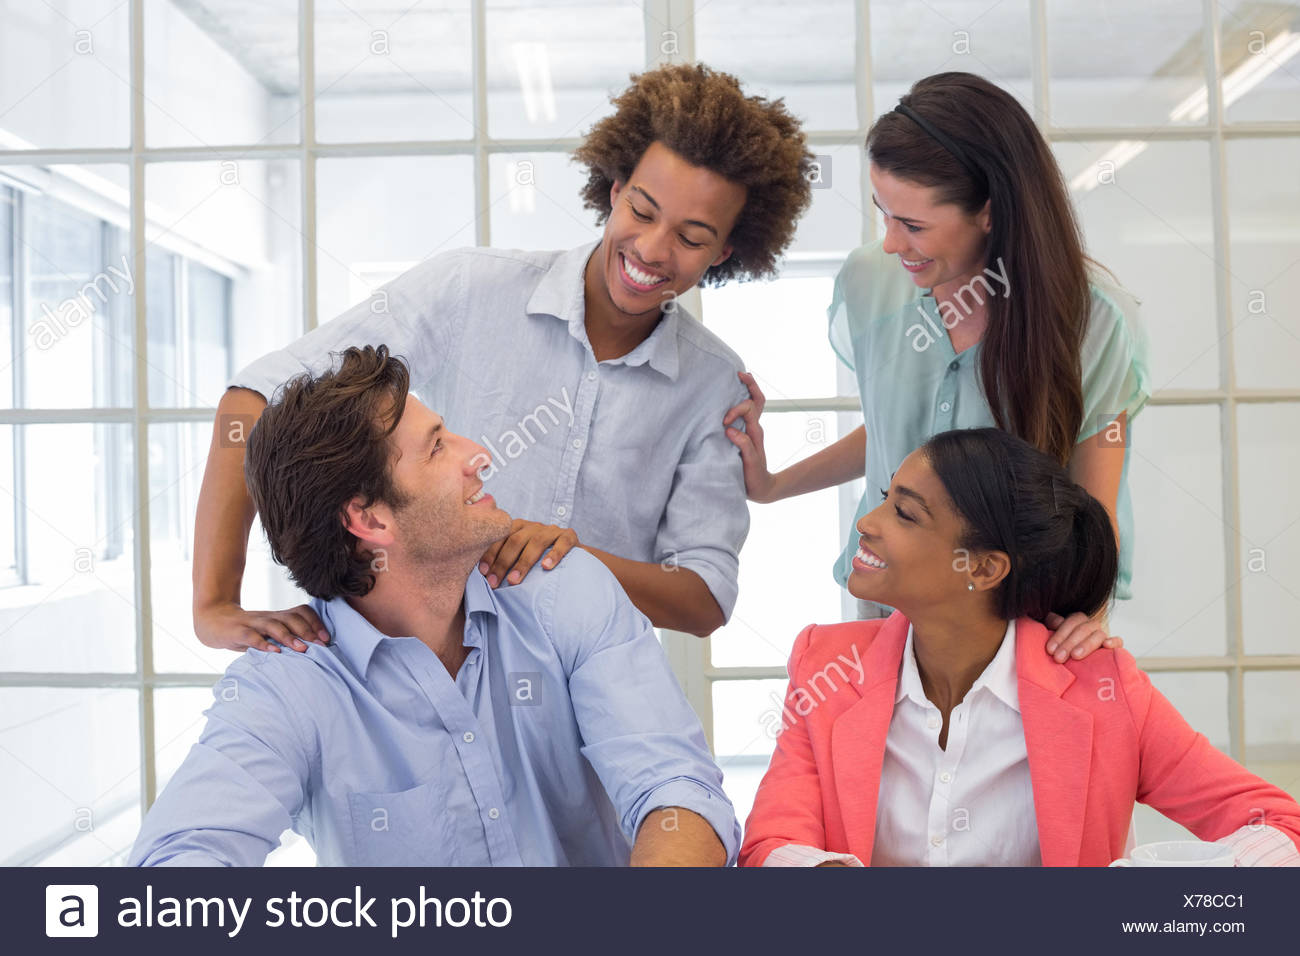 Workers congratulating and praising one another - Stock Image